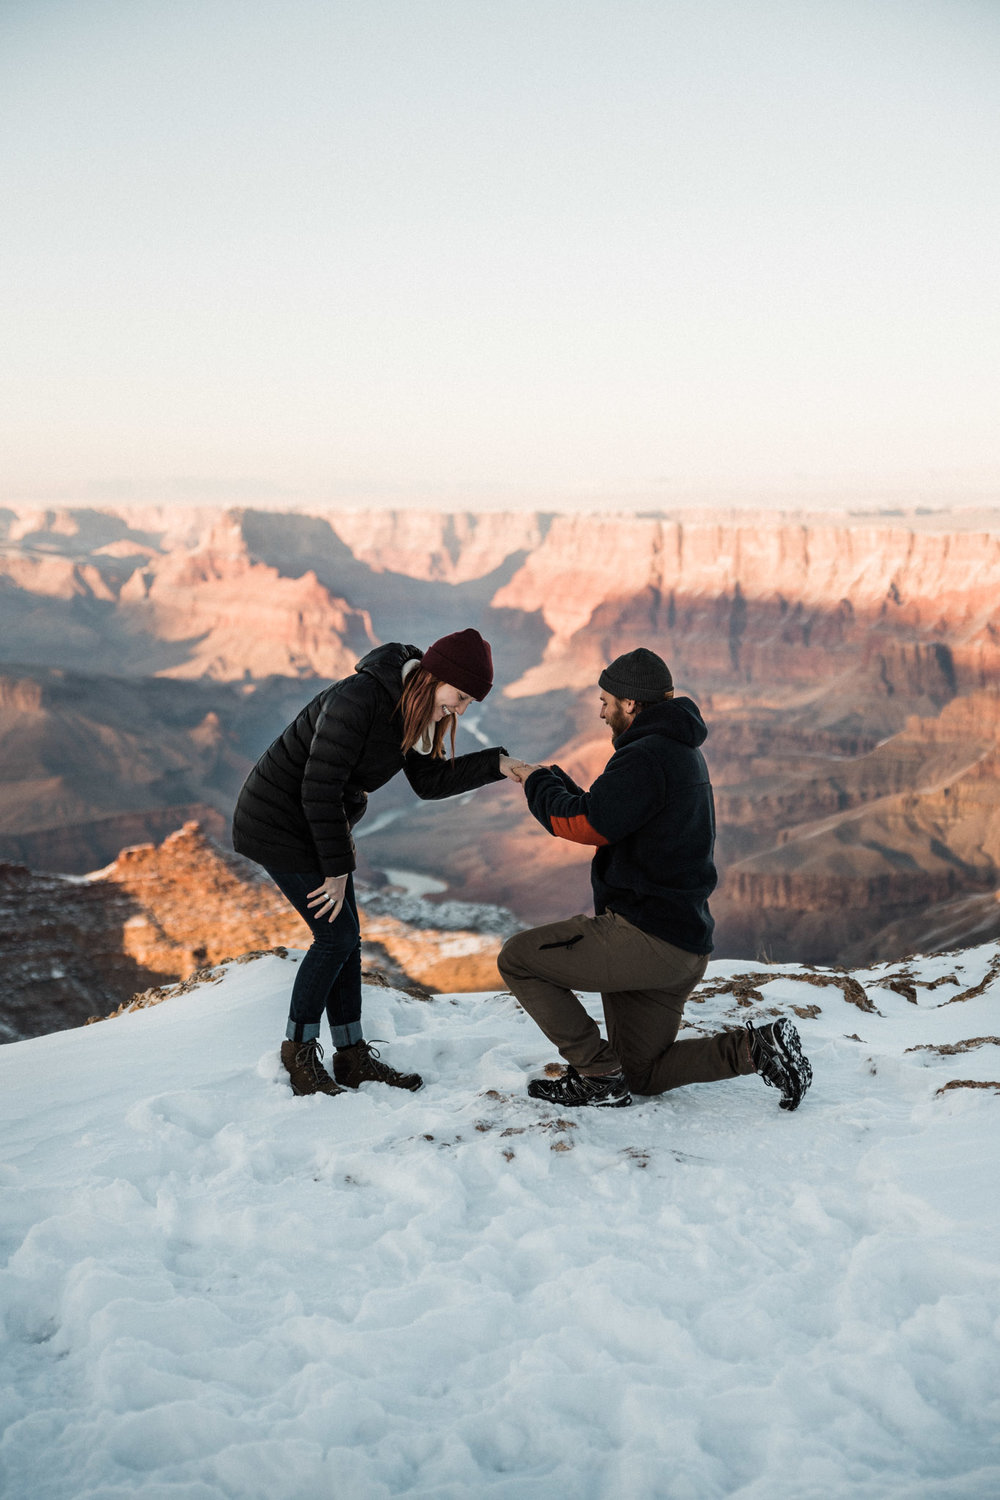 Tanner Burge Photography - Grand Canyon National Park Proposal with Kelly & Austin - Arizona, South Rim